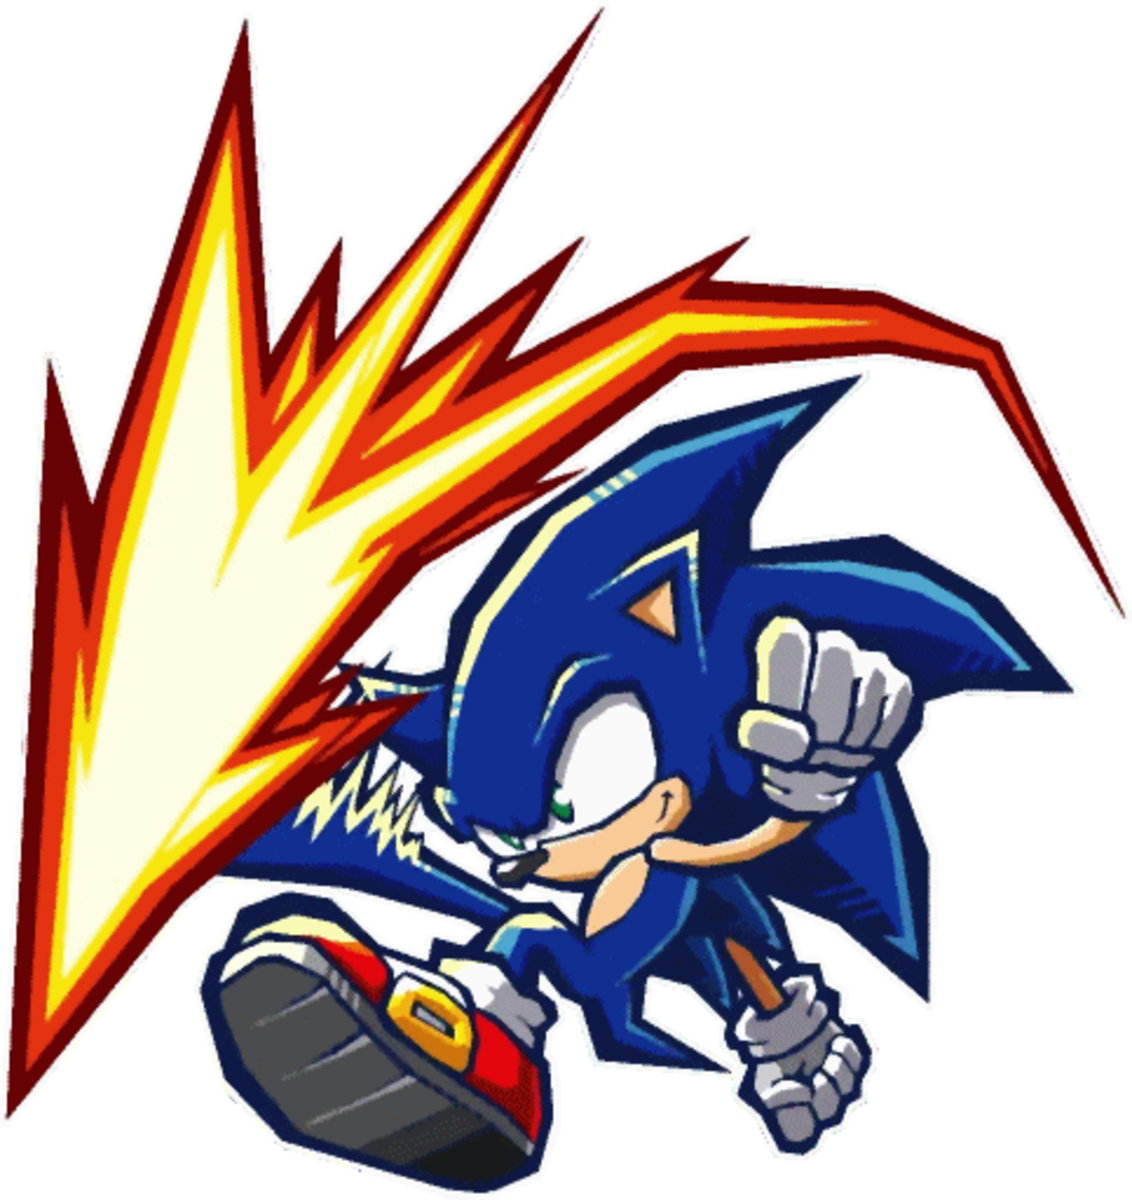 Utilizing the 3-Style System in Sonic Battle 2 would help keep fighting fresh.